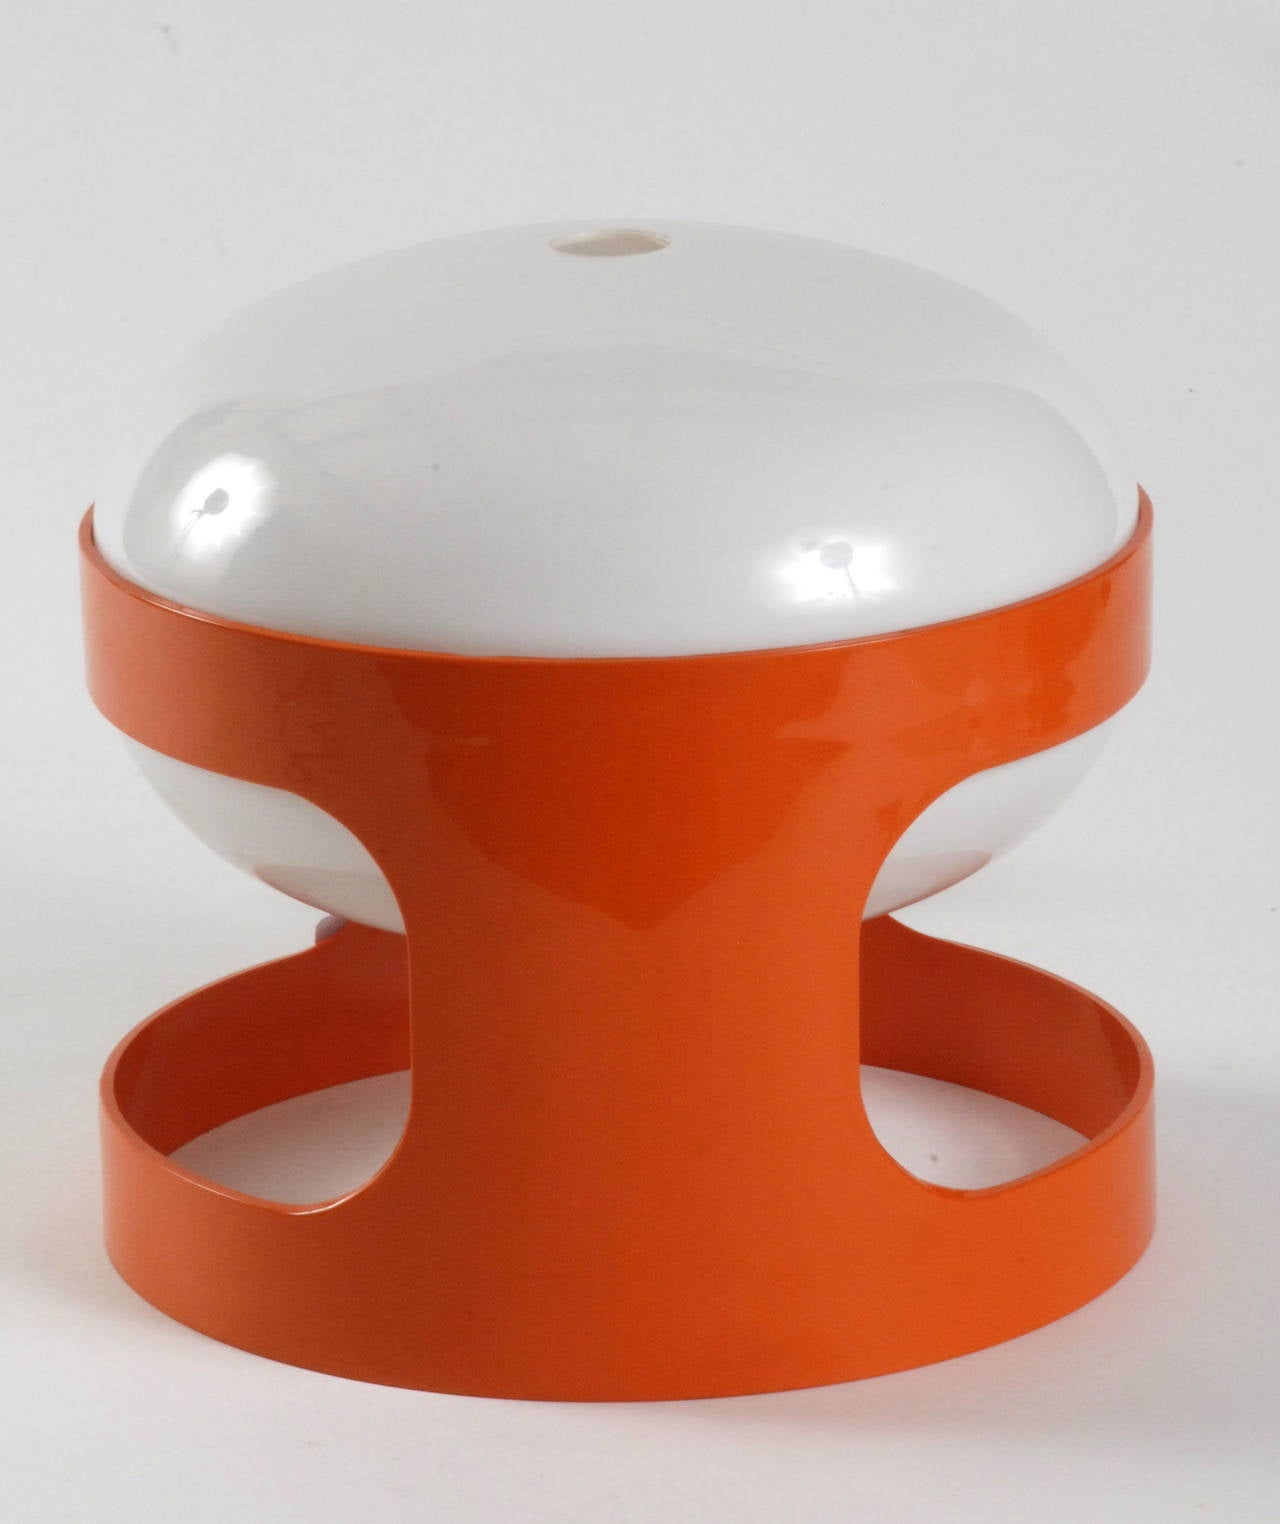 joe colombo kartell mid century kd27 table light at 1stdibs. Black Bedroom Furniture Sets. Home Design Ideas